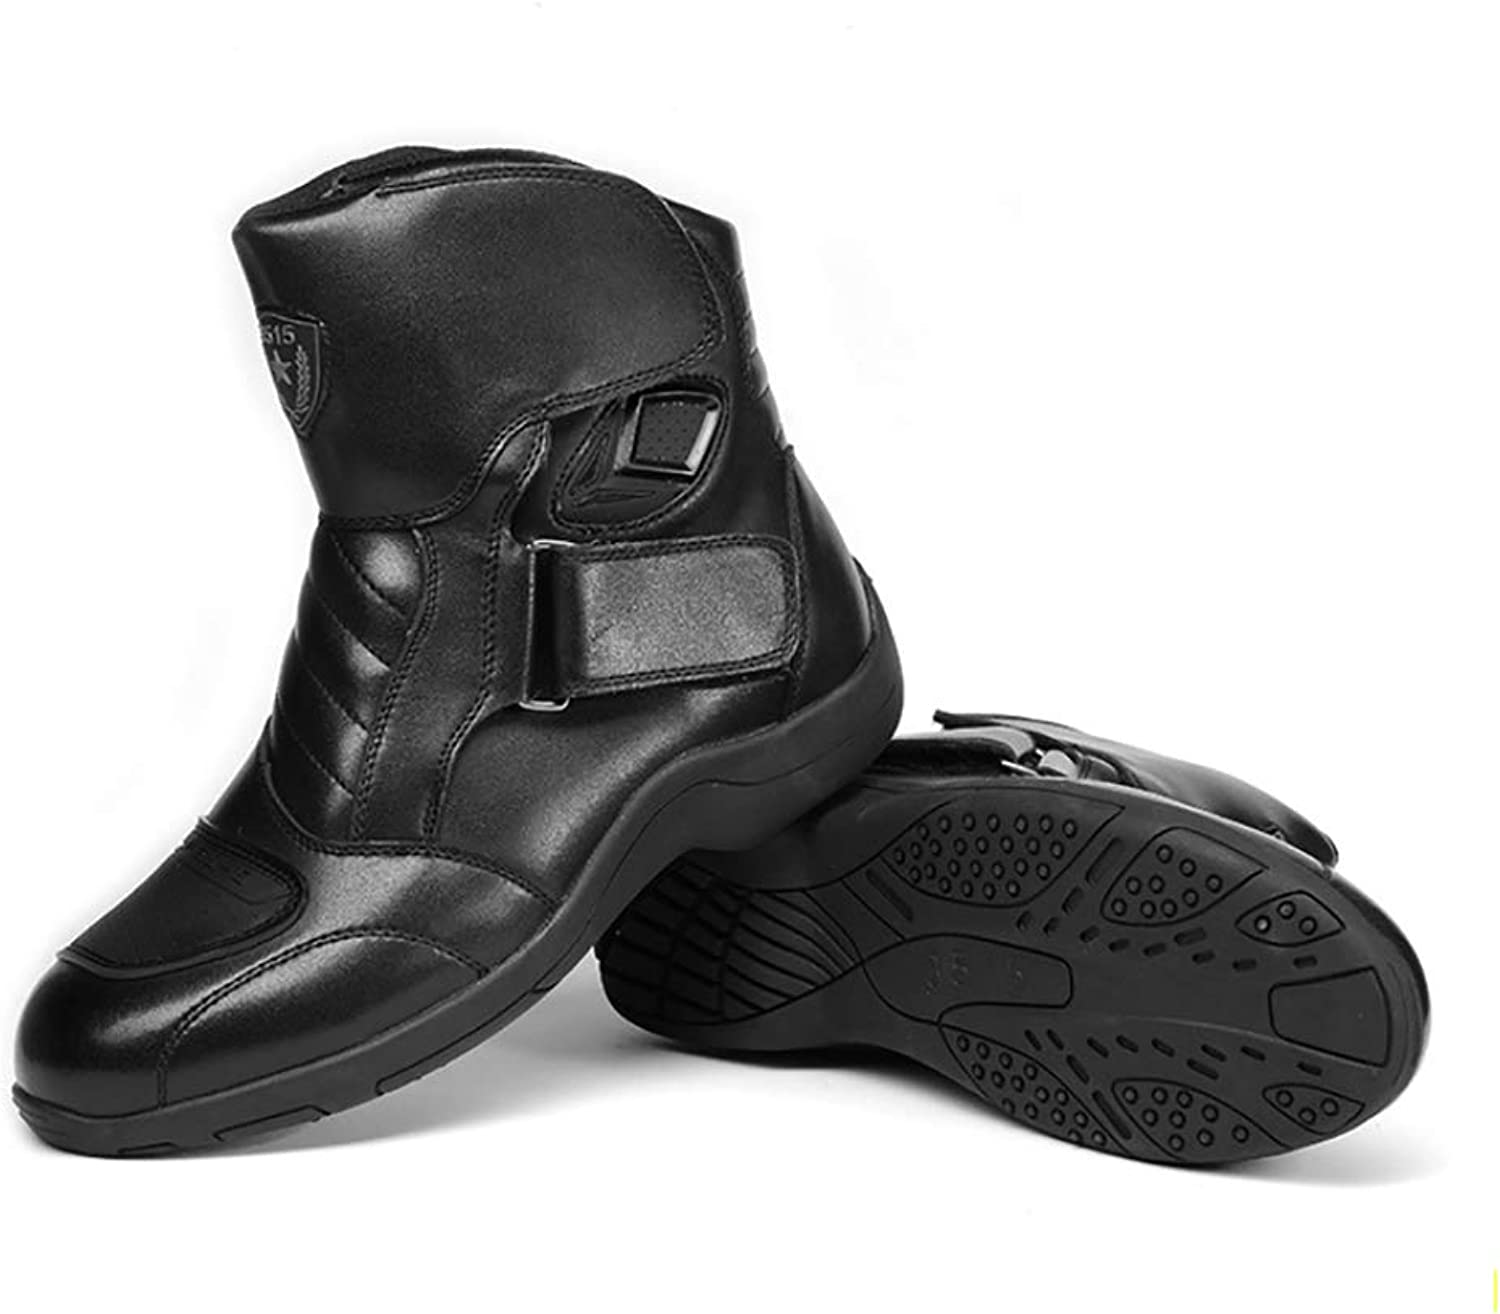 Motorcycle shoes Motorcycle Boots Motion Outdoor Riding Predection Racing Boots Waterproof Windproof Wear Resistant Men'S Casual shoes